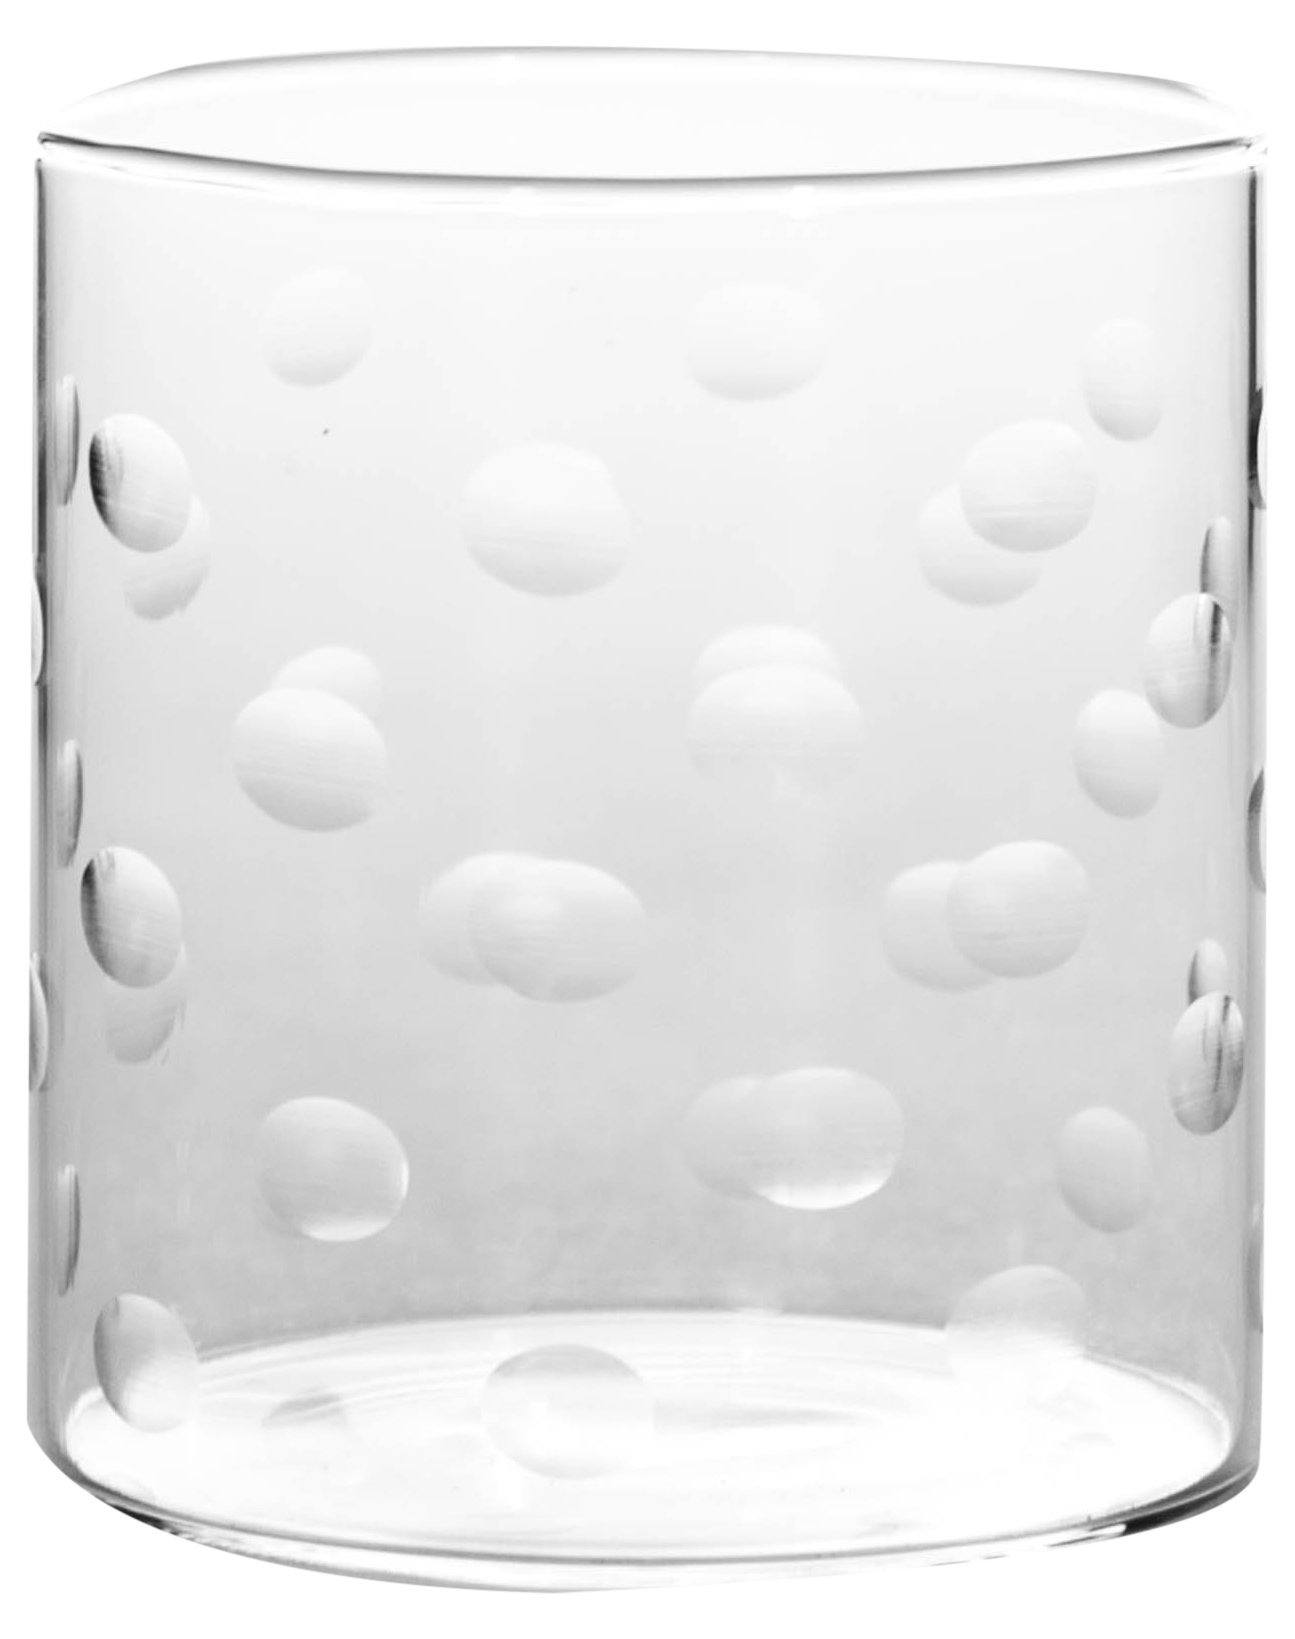 Borosil VDPT305 Vision Deco Polka Tumbler [Set of 6] Clear Lightweight & Durable Drinkware, Odor Resistant, Dishwasher Safe - For Water, Juice, Beer, Wine, and Cocktails, | | 10 Ounce Cups, Glass